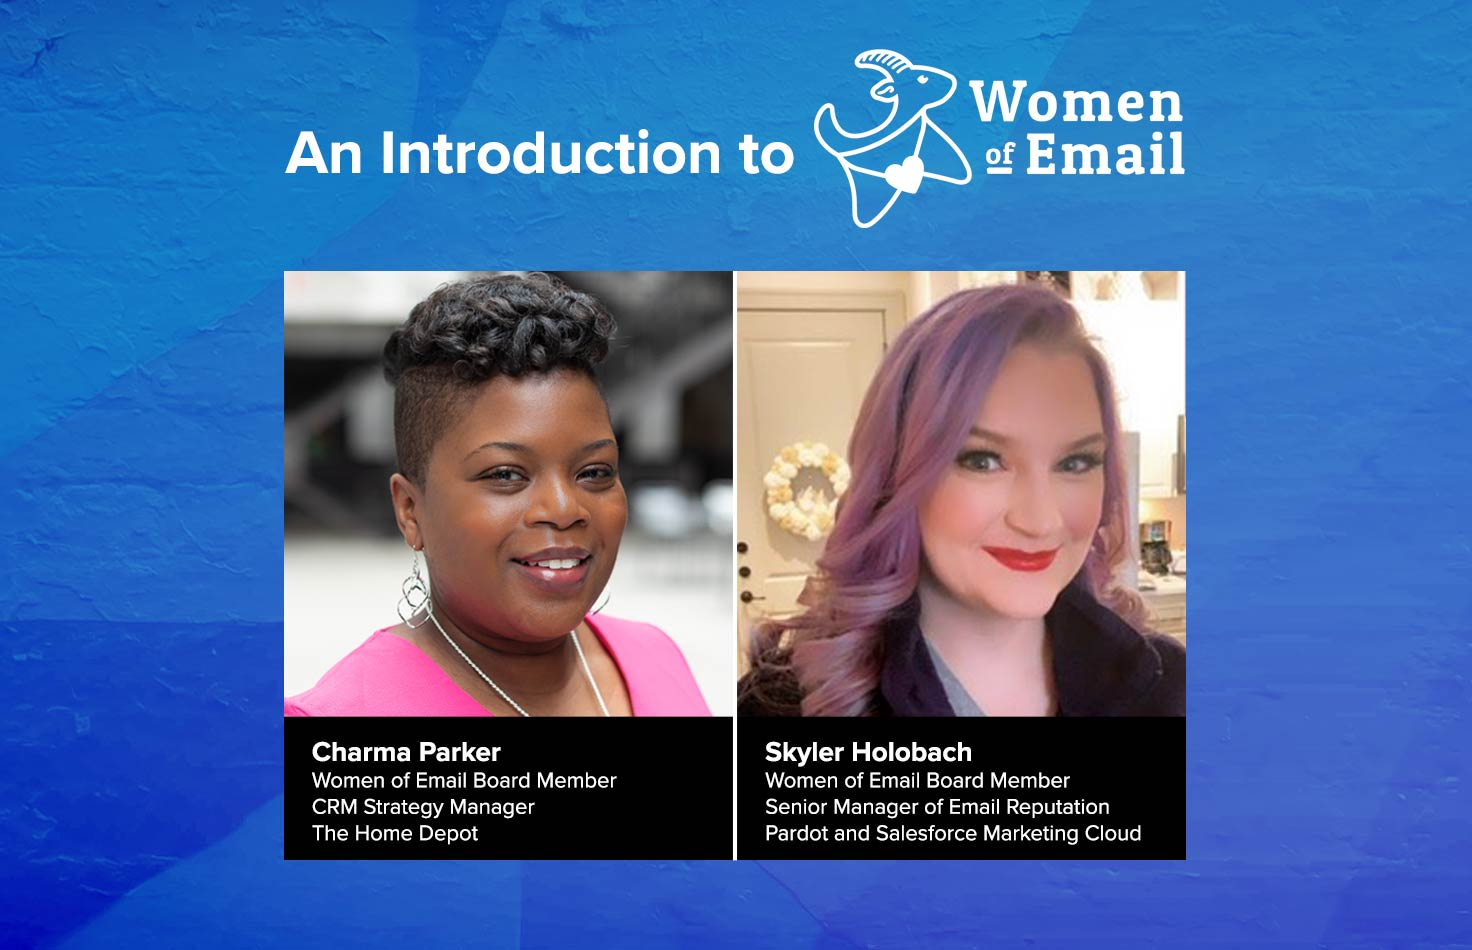 An Introduction to Women of Email